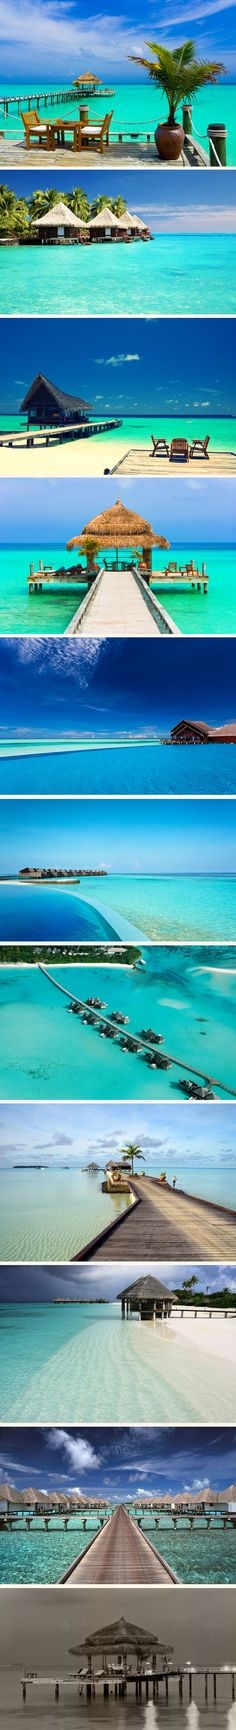 Maldives...breathtaking